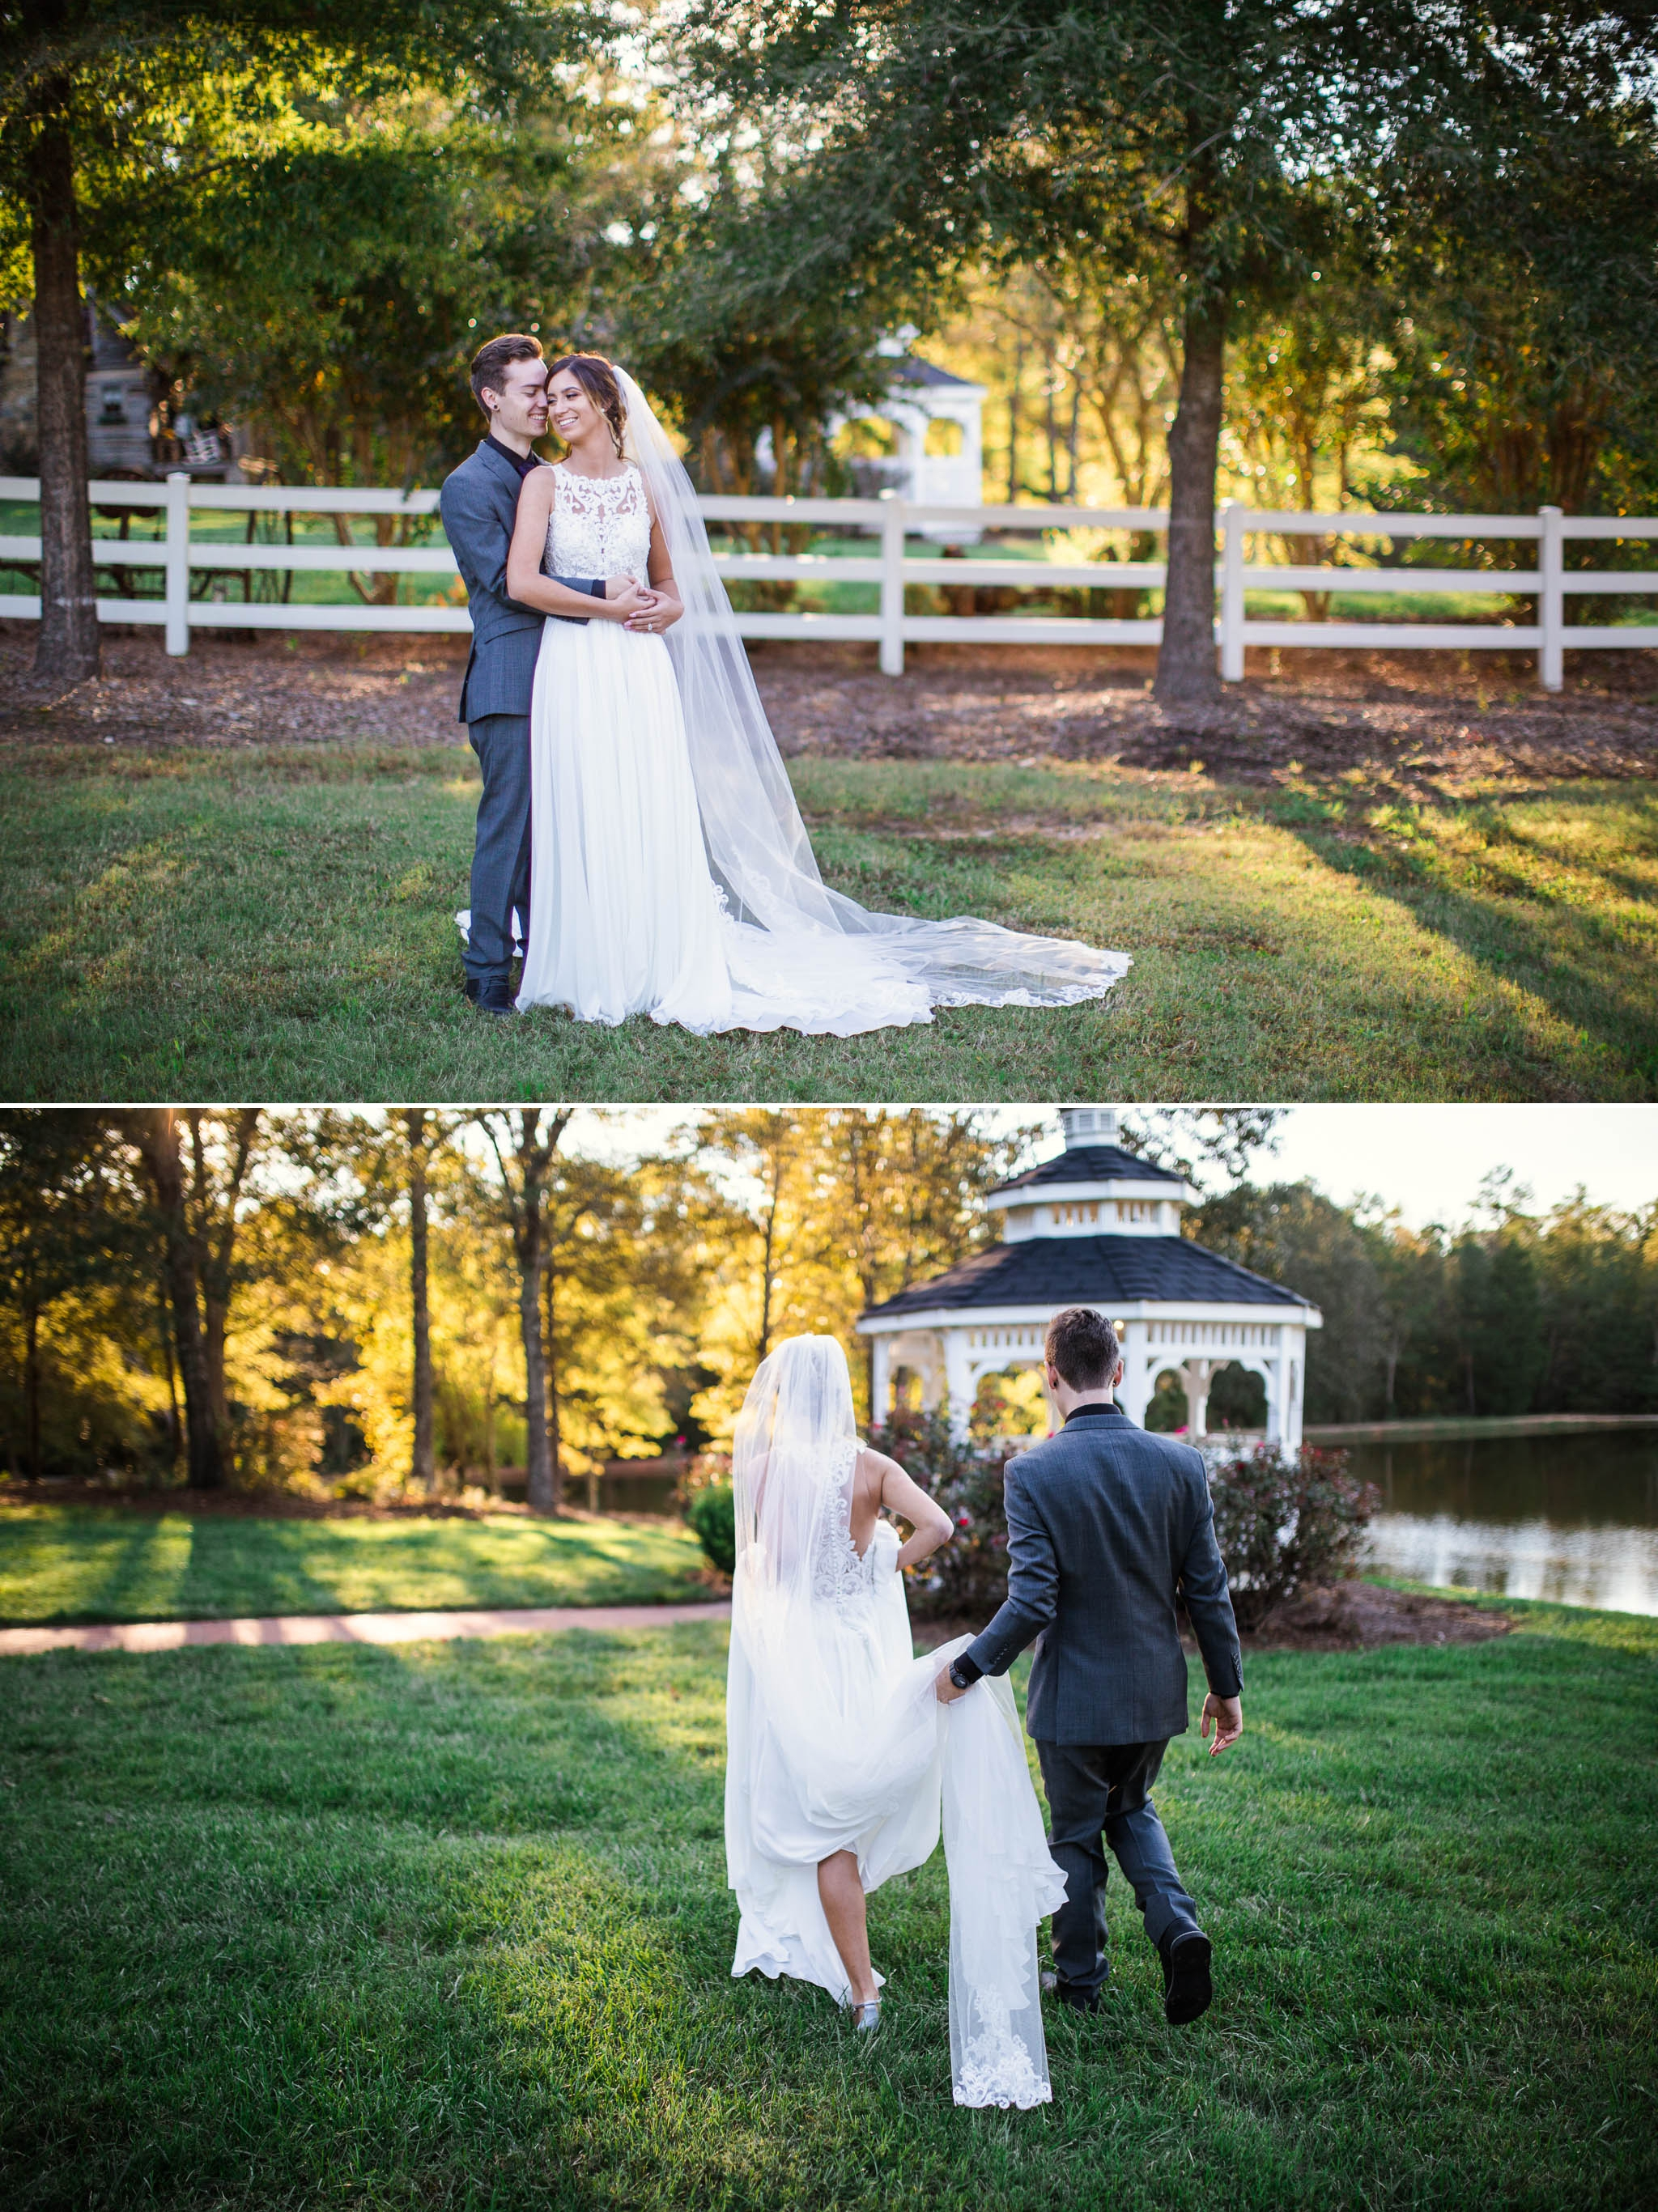 Brittany + Greg - The Groomes Place in Matthews NC - Charlotte, NC Wedding Photographer 15.jpg